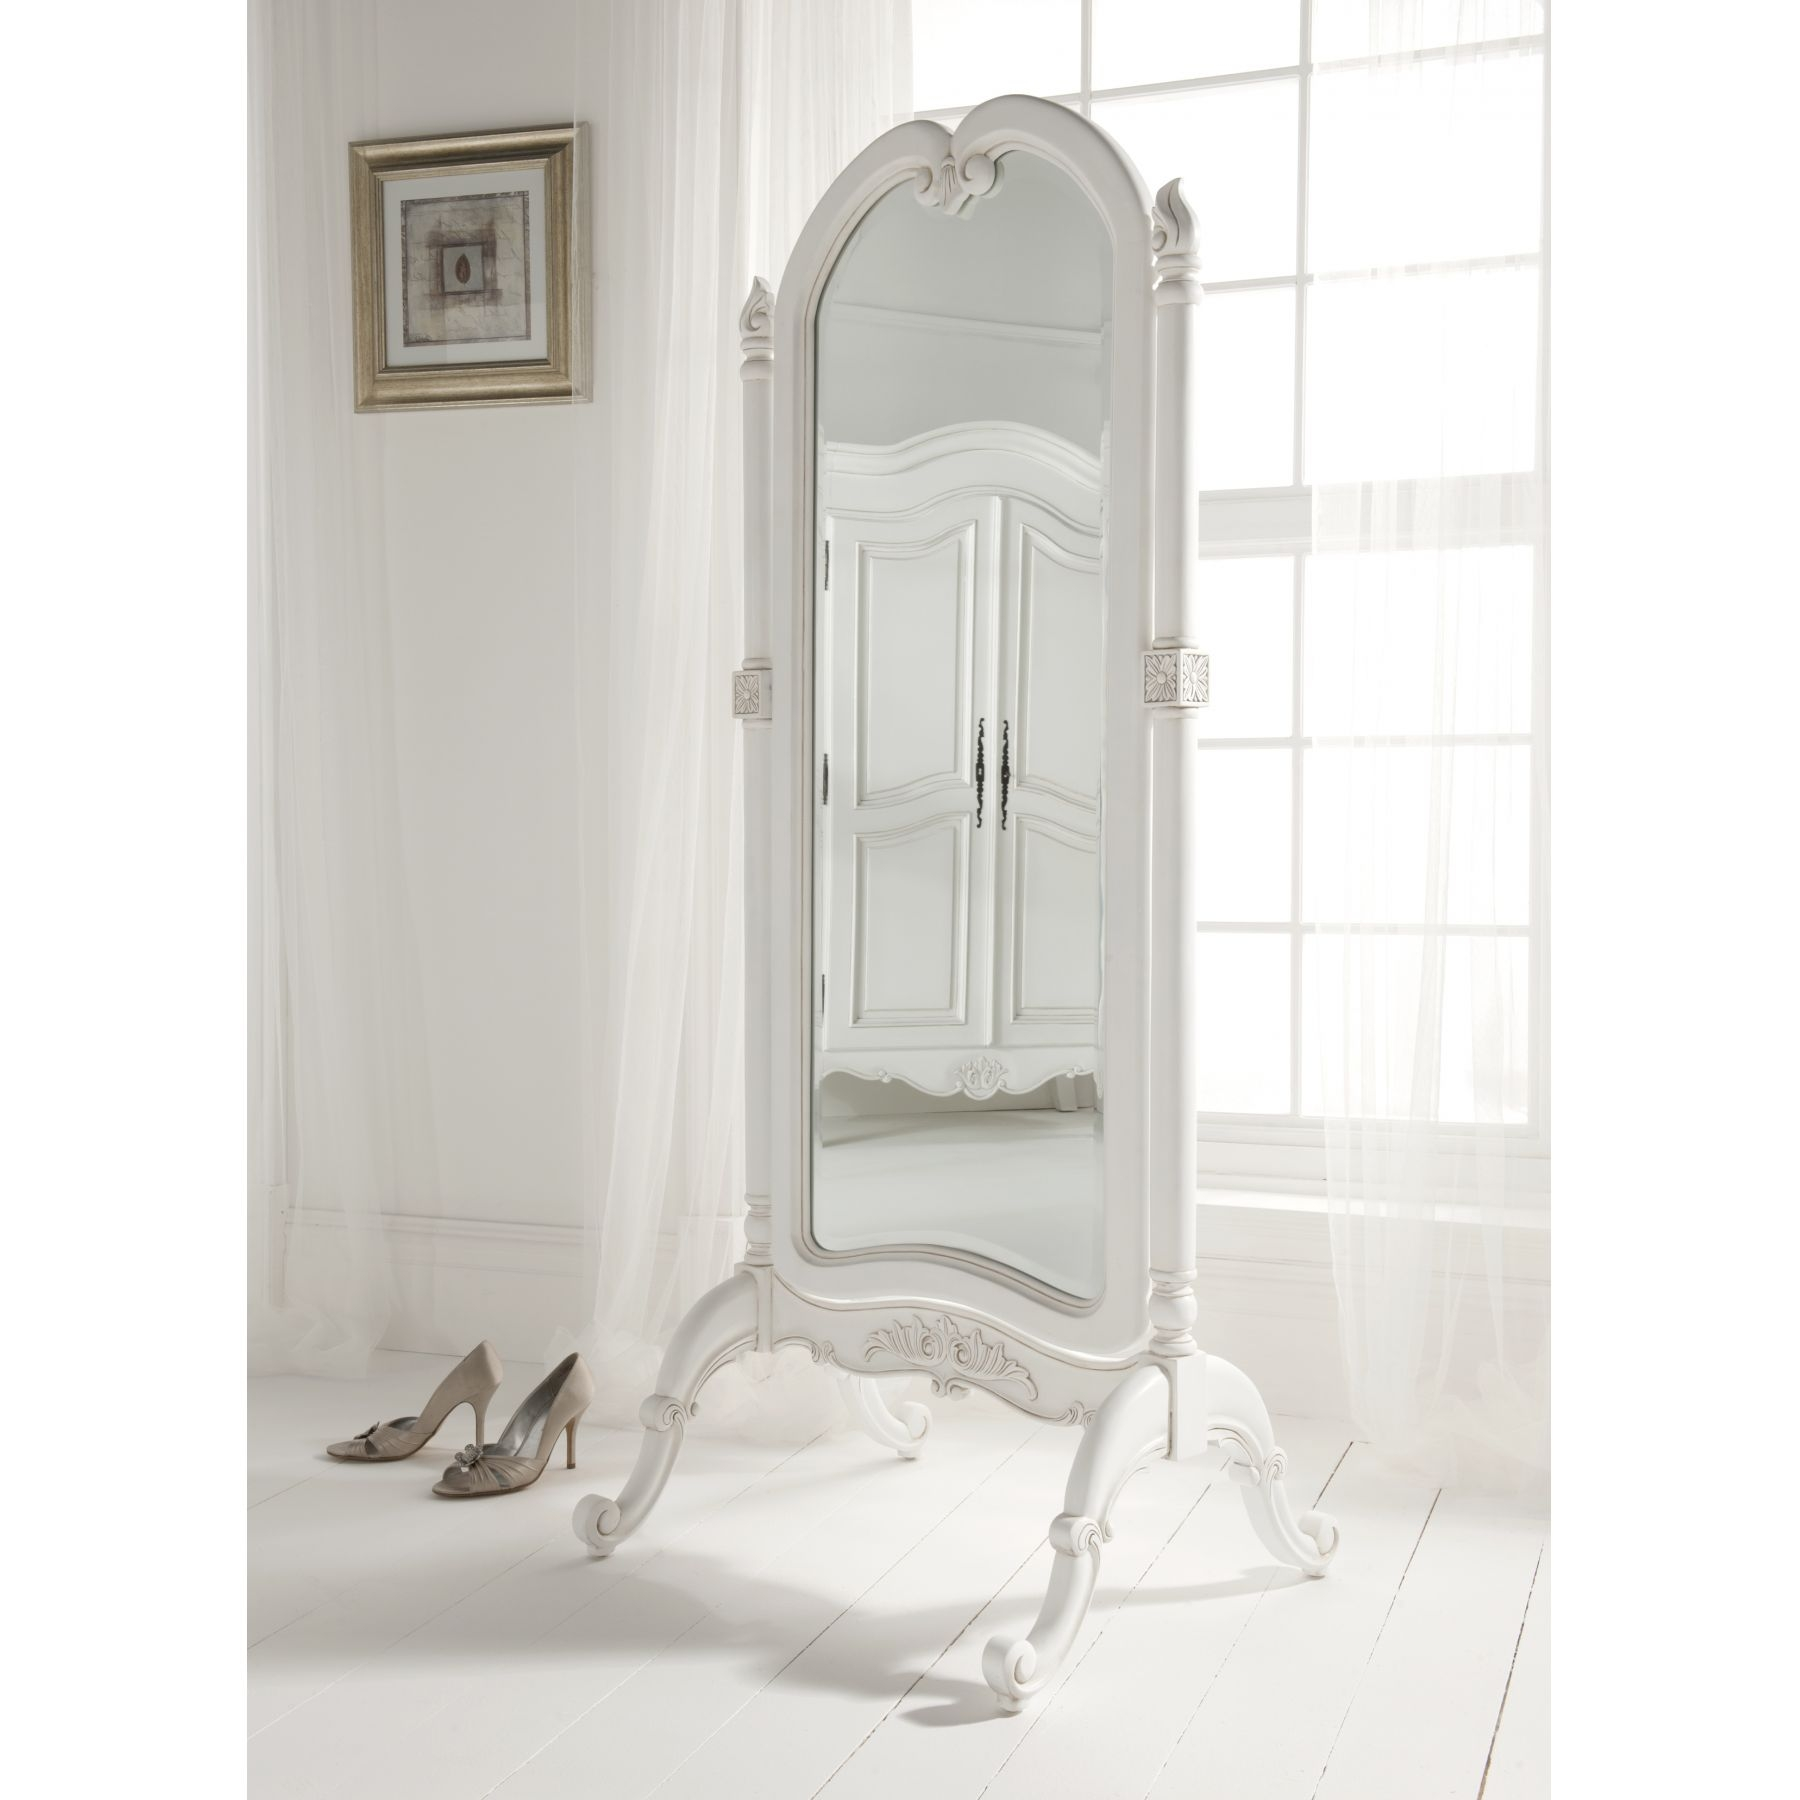 Full Length Mirror Ideas 15 43 Full Length Free Standing Mirror With Drawer Mirror